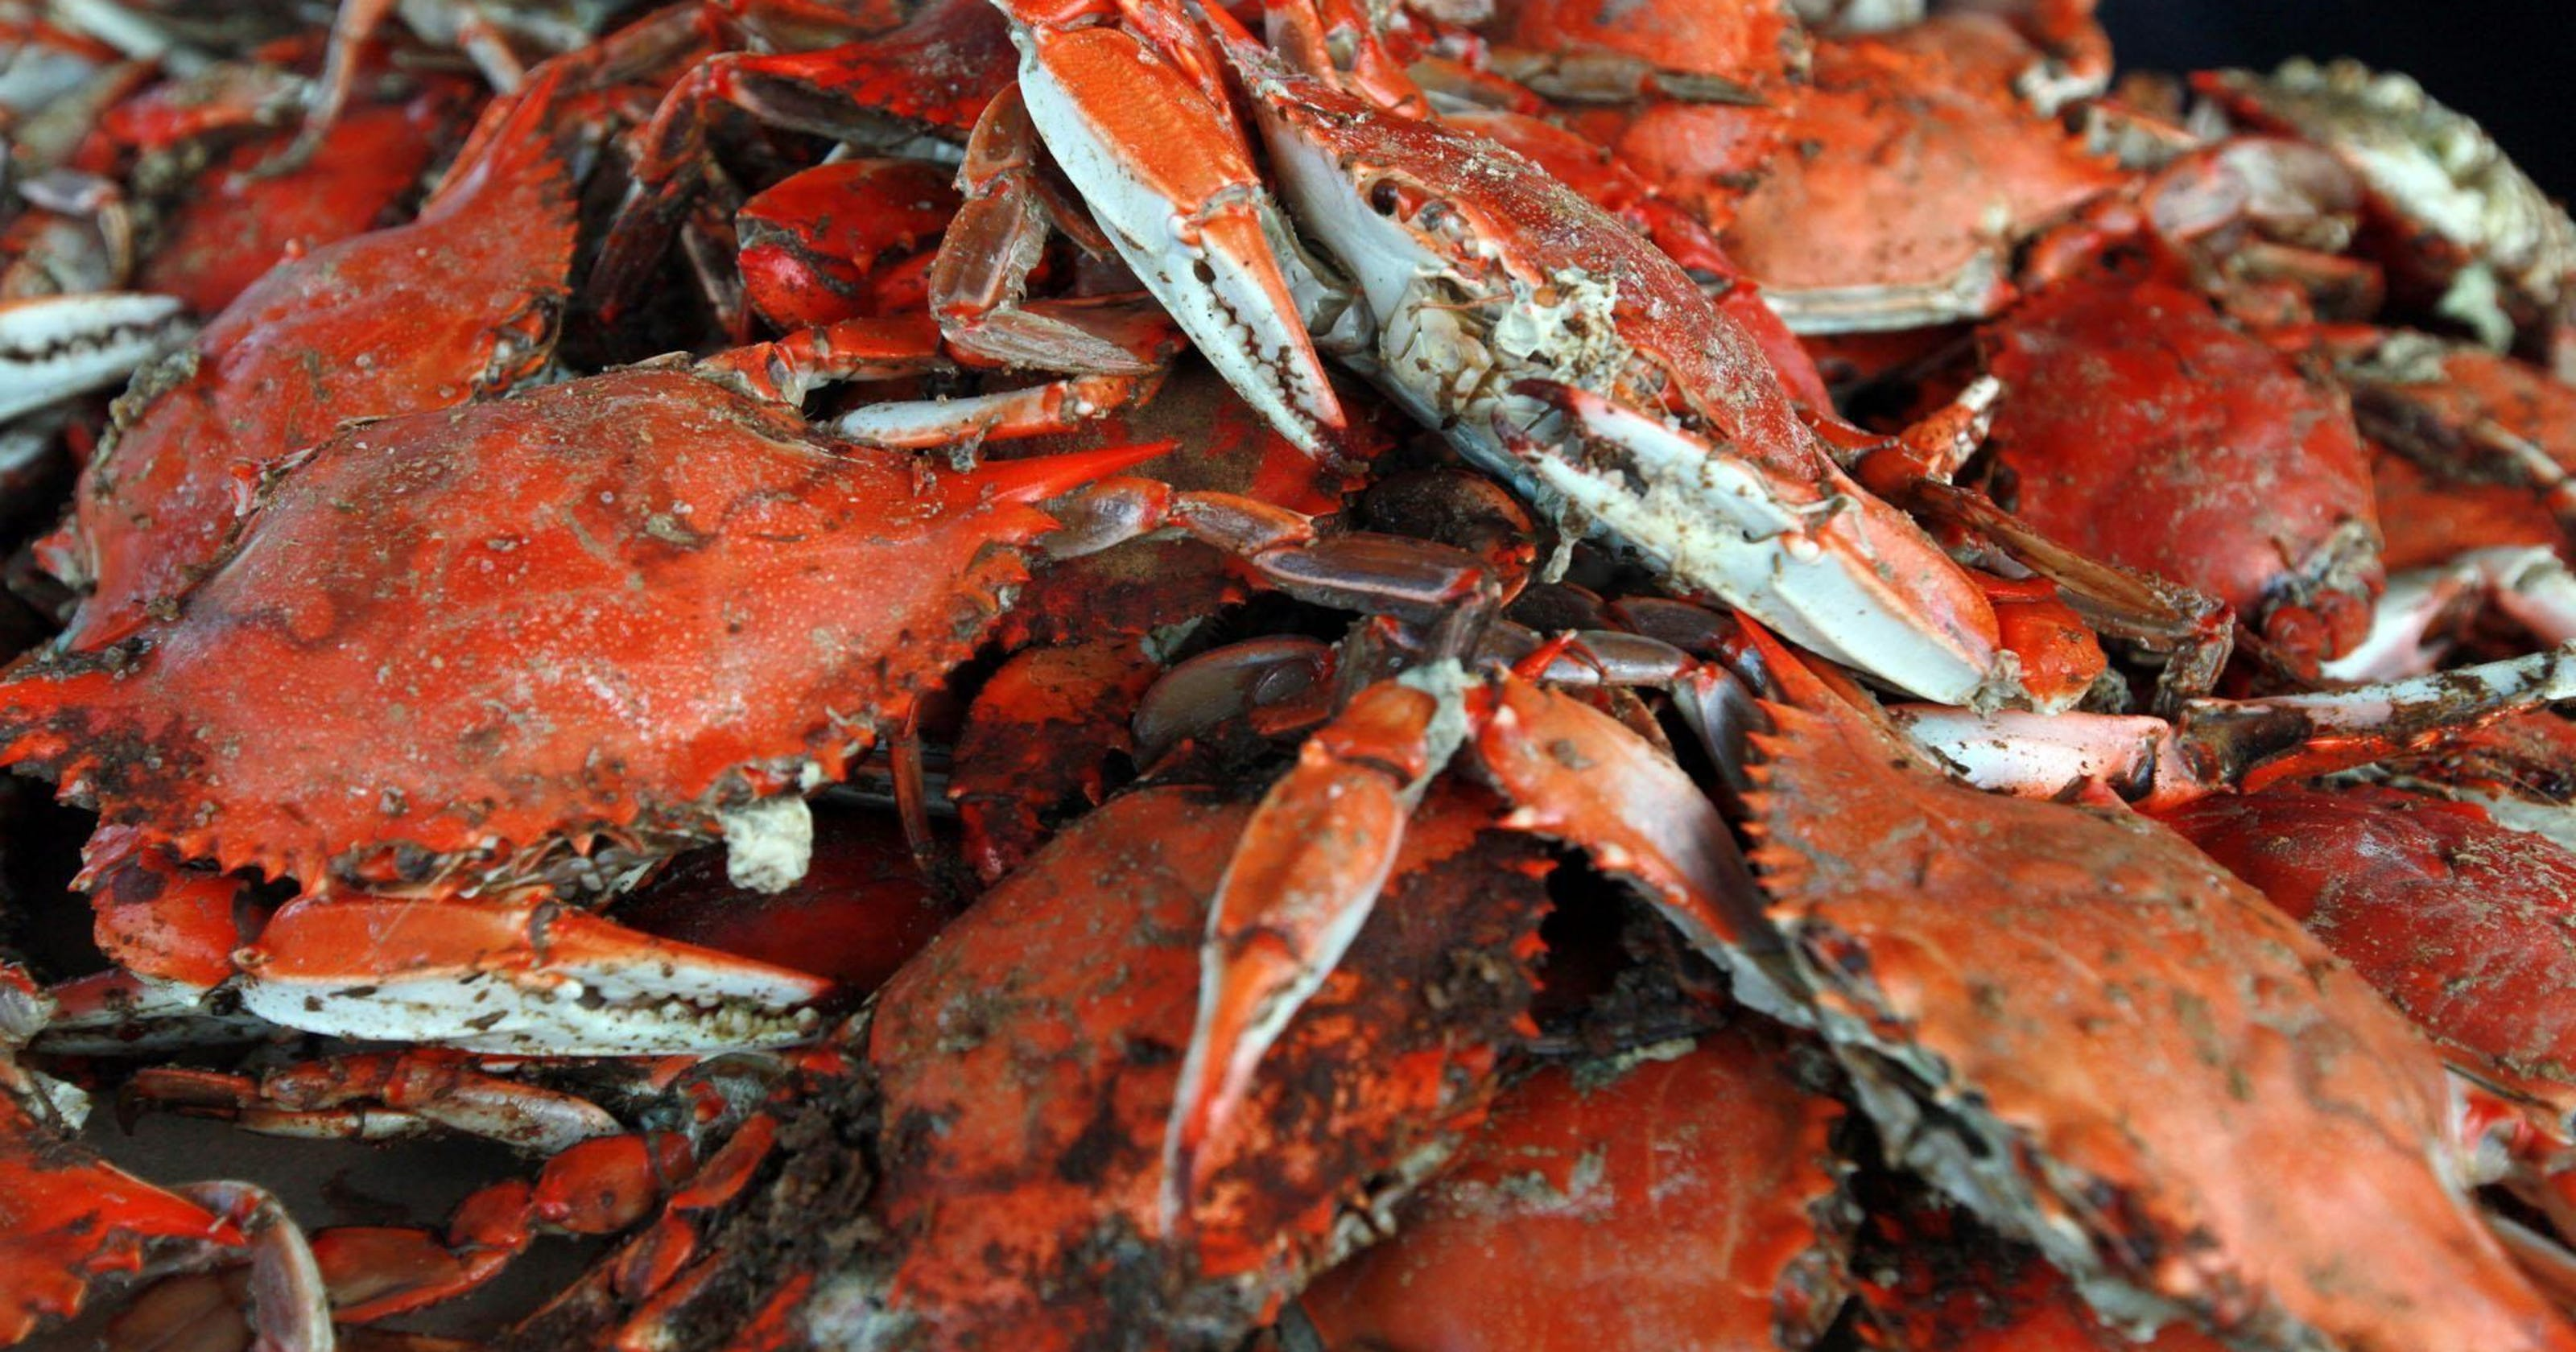 Best Crab Restaurants In Maryland Make Your Voice Heard For